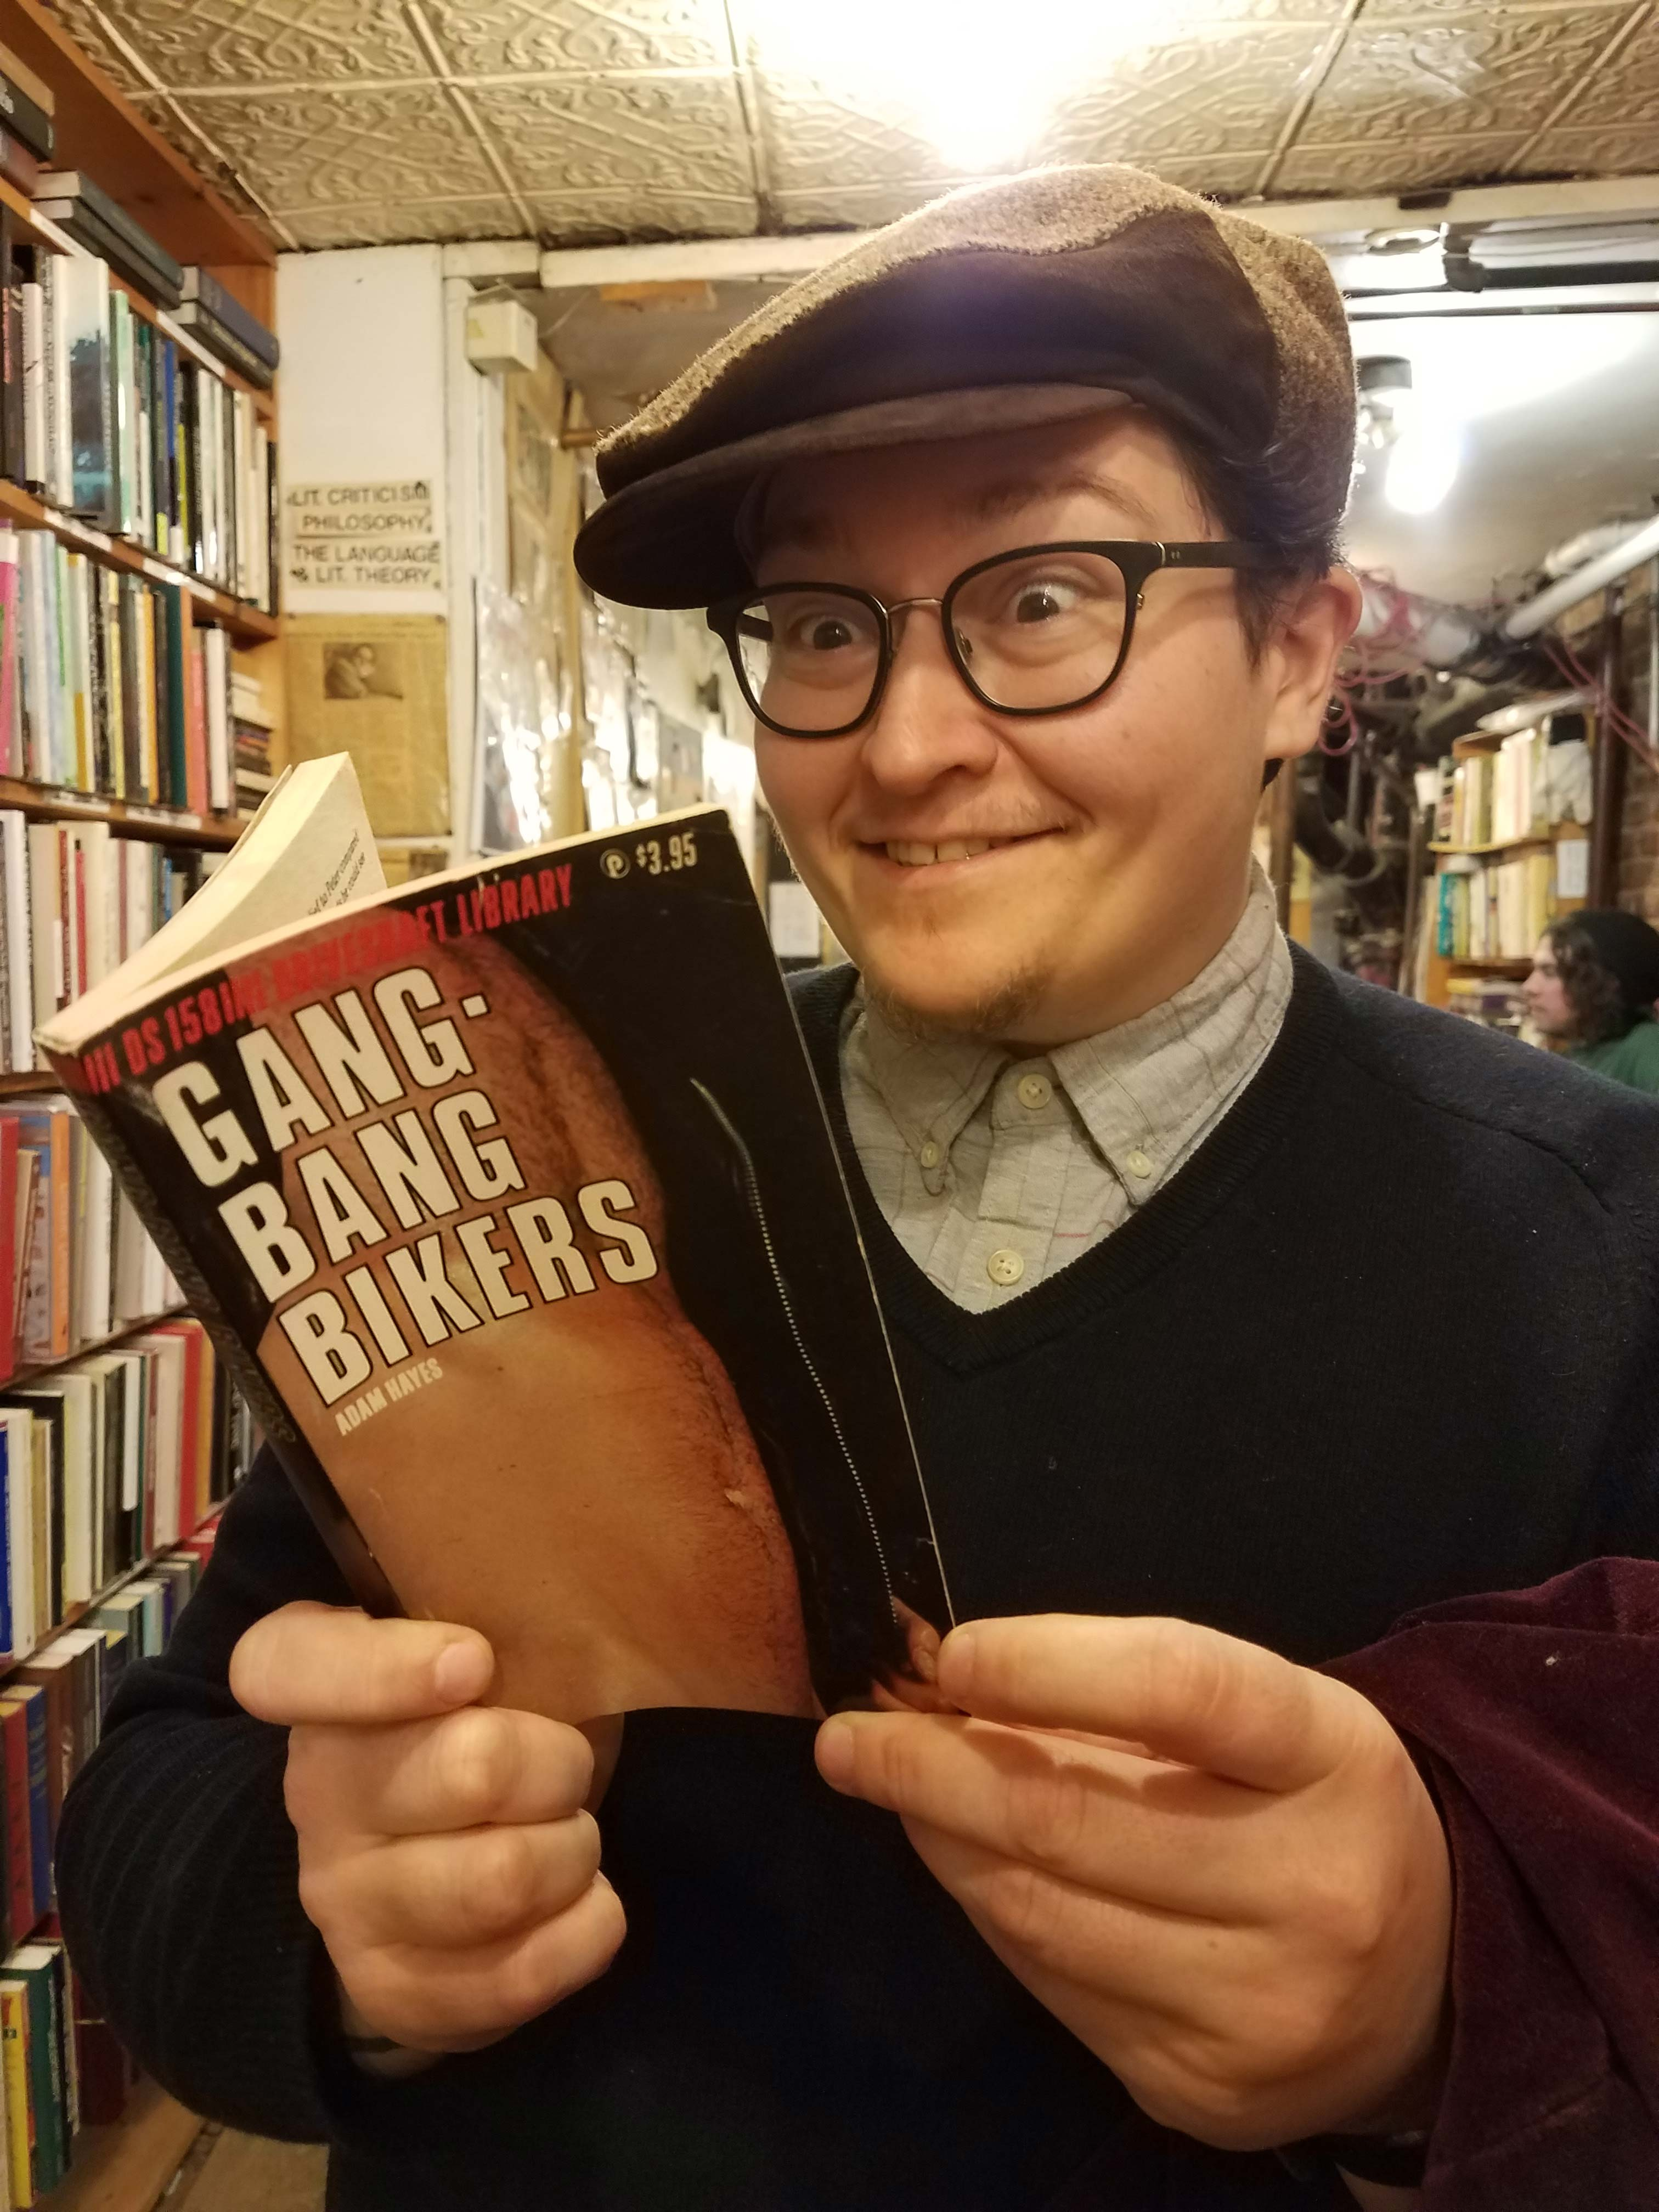 "A person reading a book in a cramped bookstore, wide eyed and grinning. The book's cover reads ""GANG-BANG BIKERS"" and shows a person's bare chest."